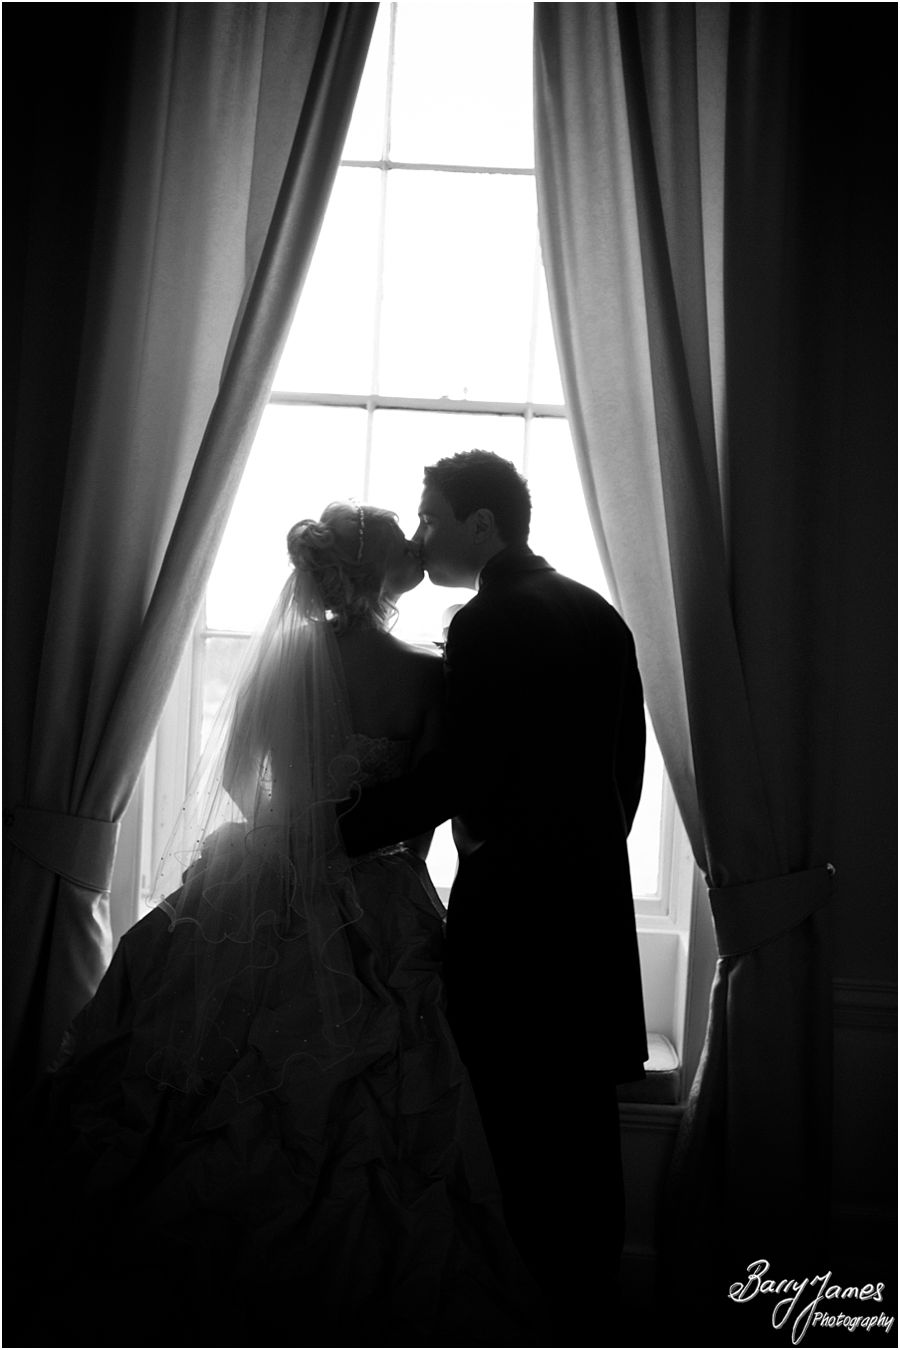 Unobtrusive reportage wedding photos of Christmas wedding at Somerford Hall in Brewood by Award Winning Wedding Photographer Barry James